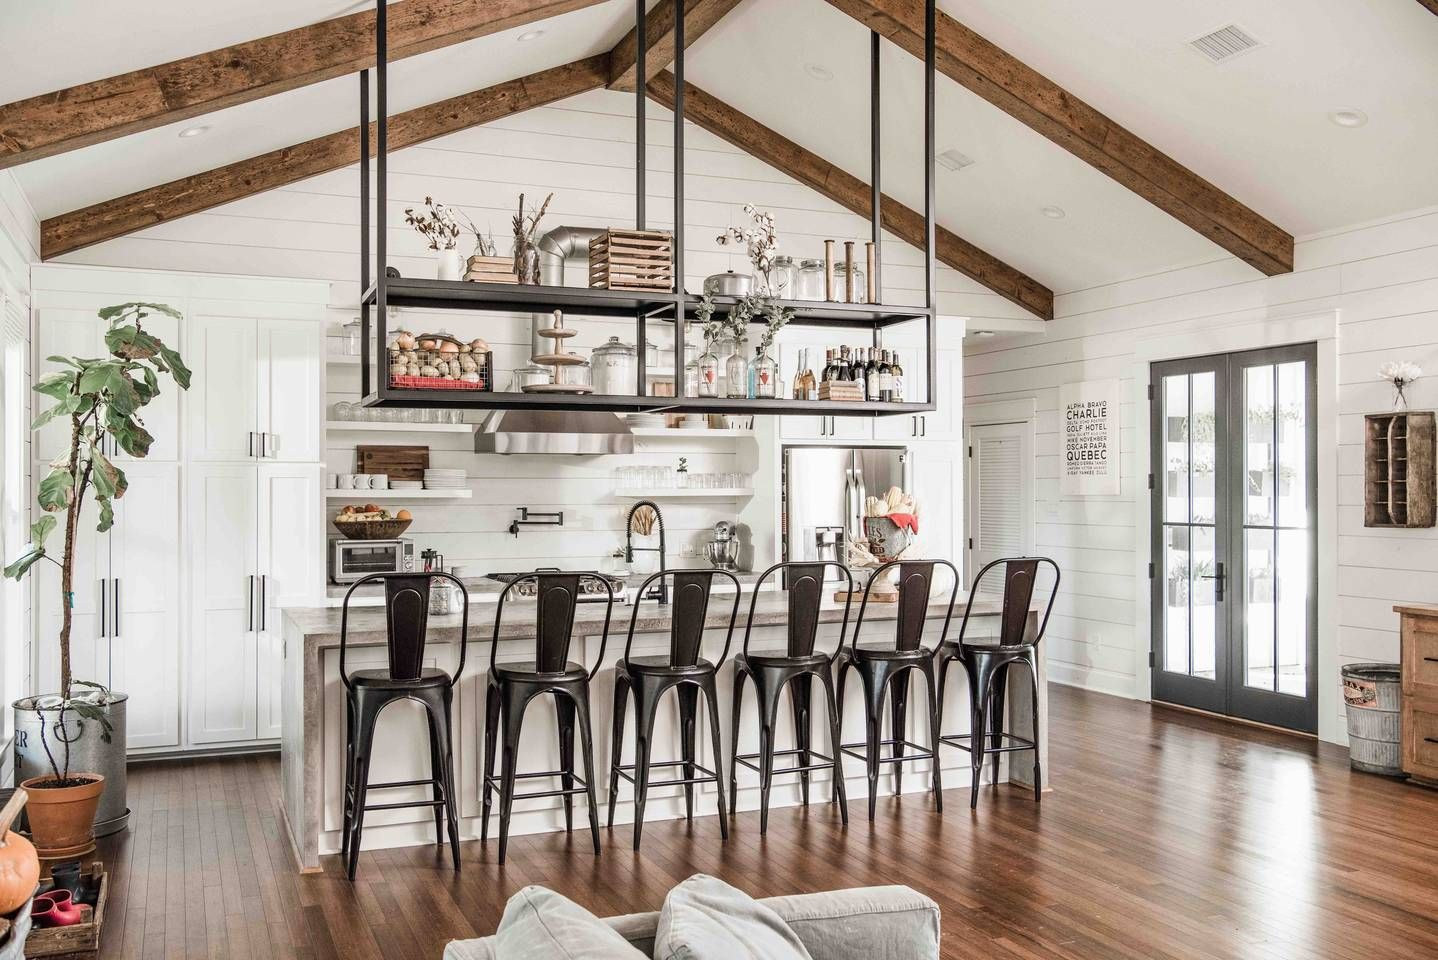 Chip And Joanna Gaines Fixer Upper House For Rent On Airbnb